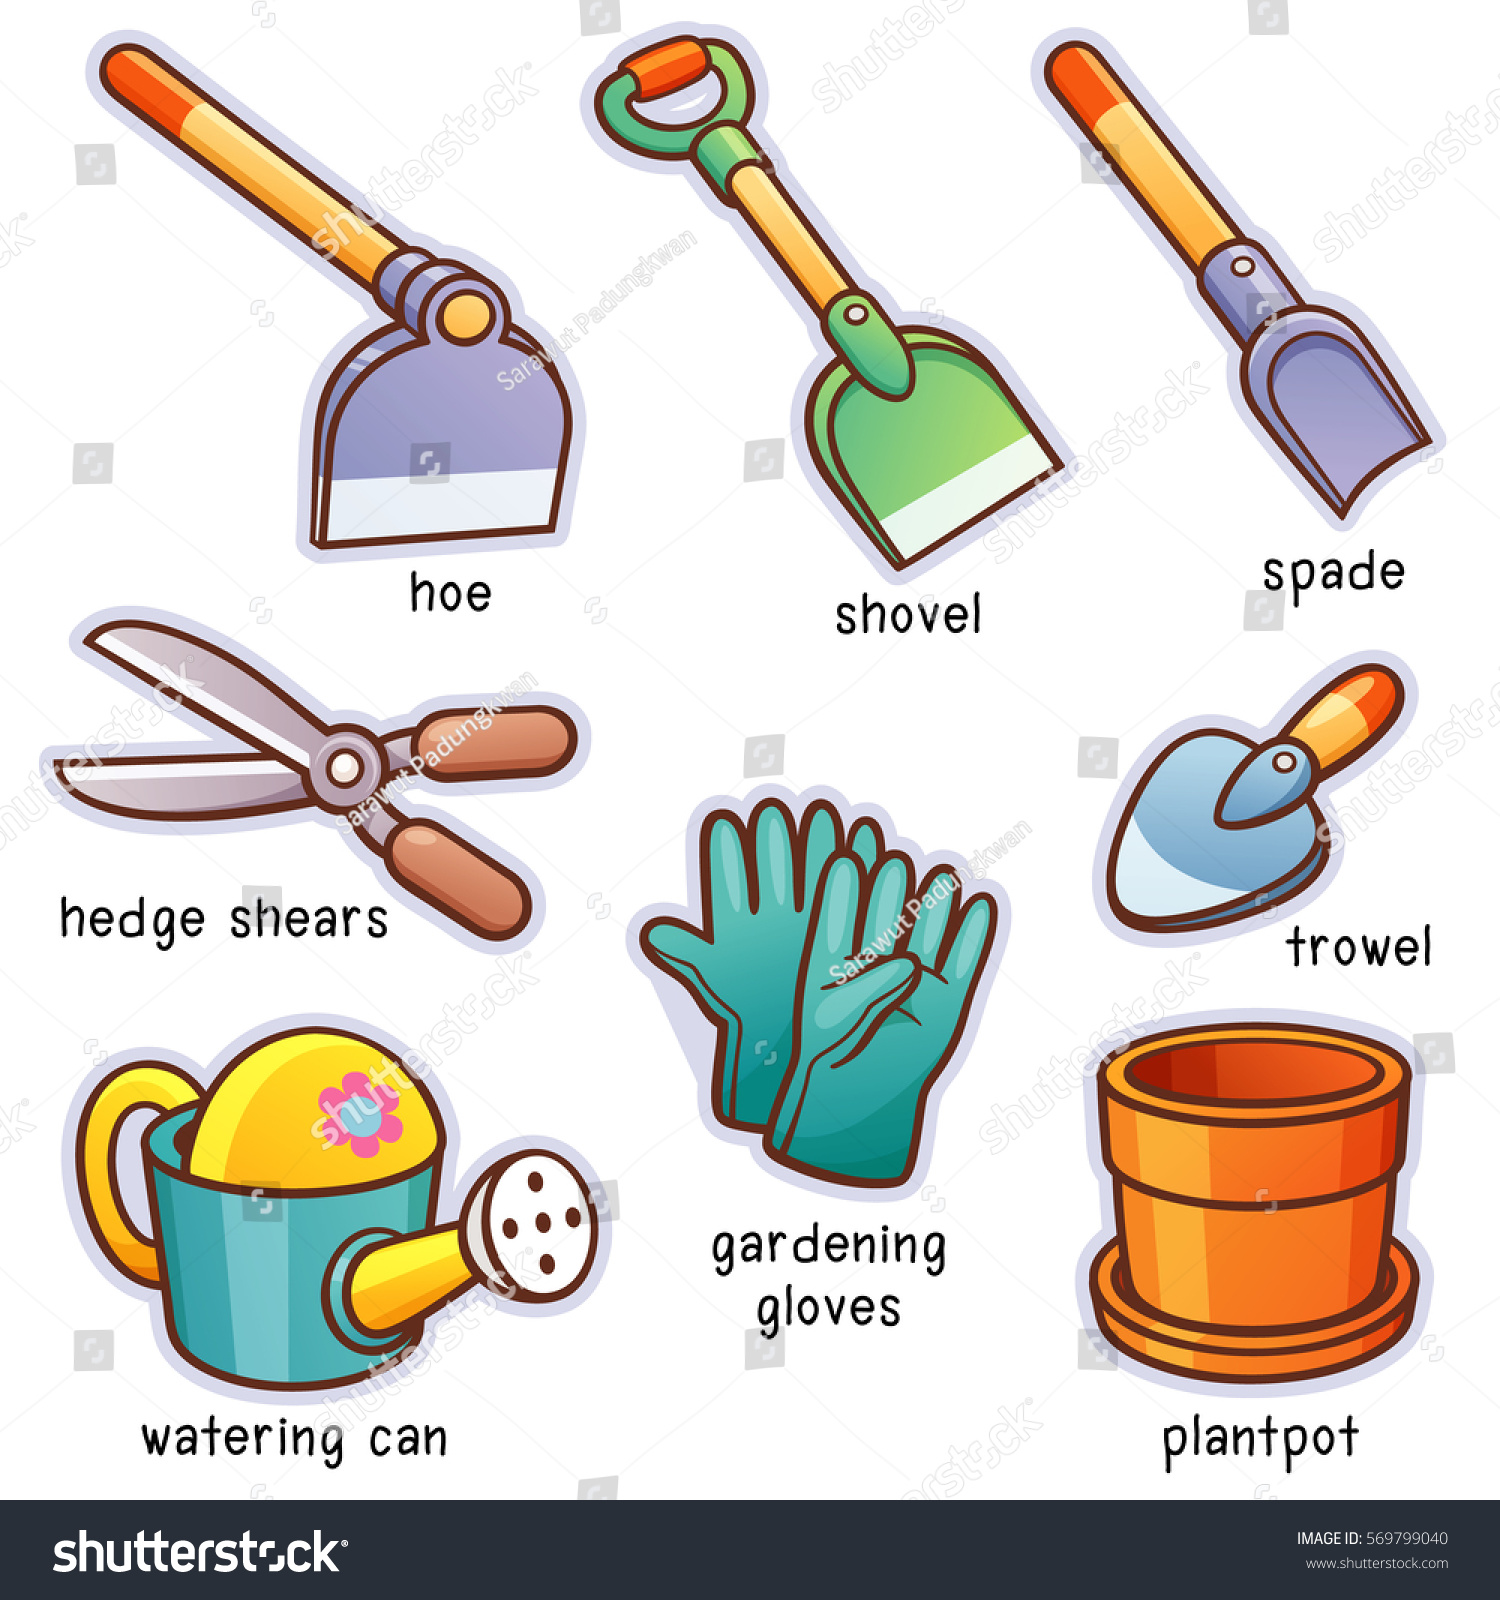 Vector illustration cartoon garden tools vocabulary stock for Gardening tools cartoon